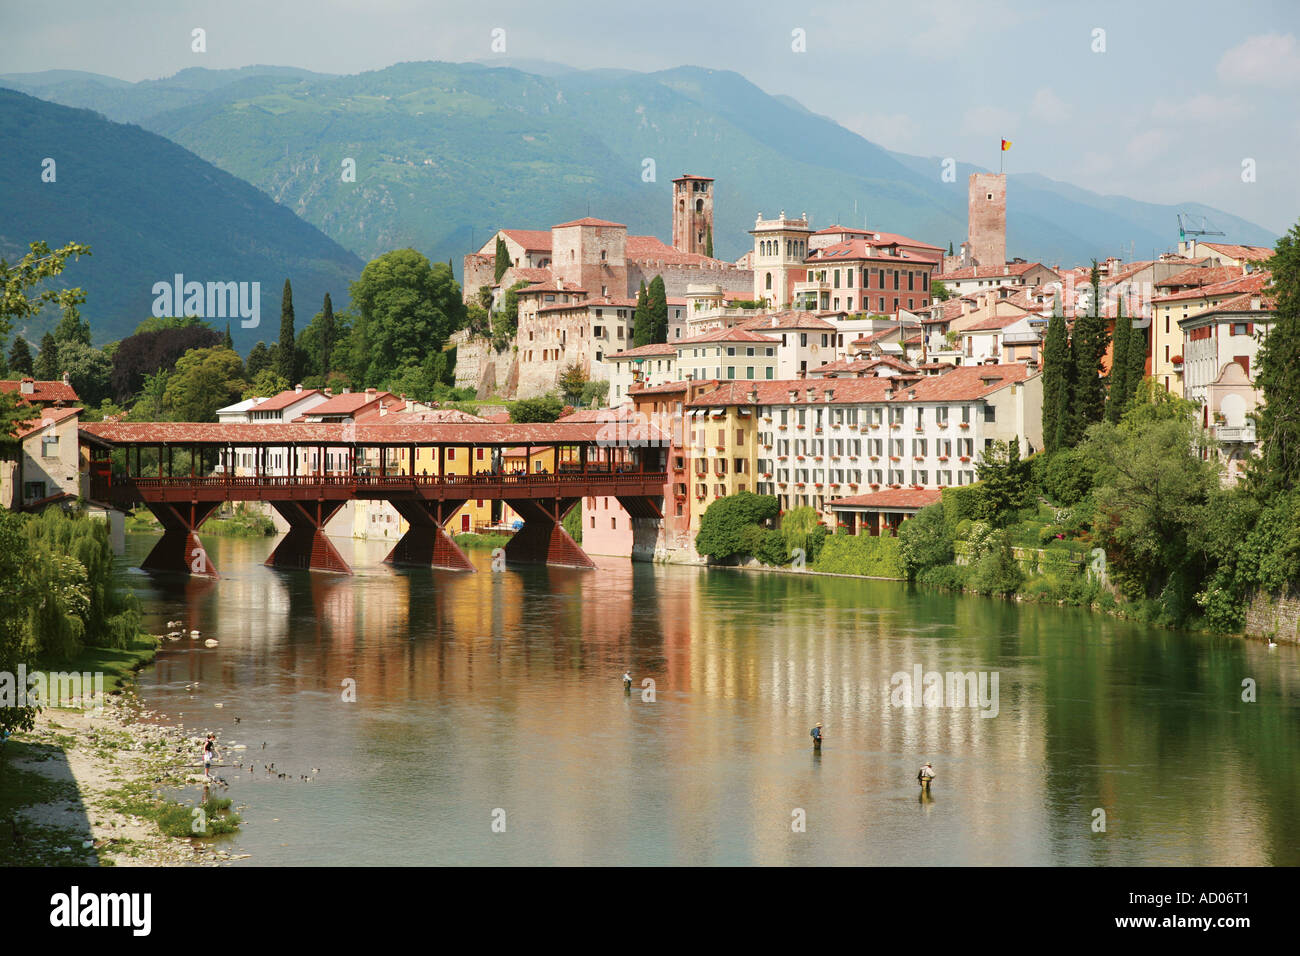 The old bridge over the river in bassano del grappa in italy just stock photo royalty free - Cucine bassano del grappa ...